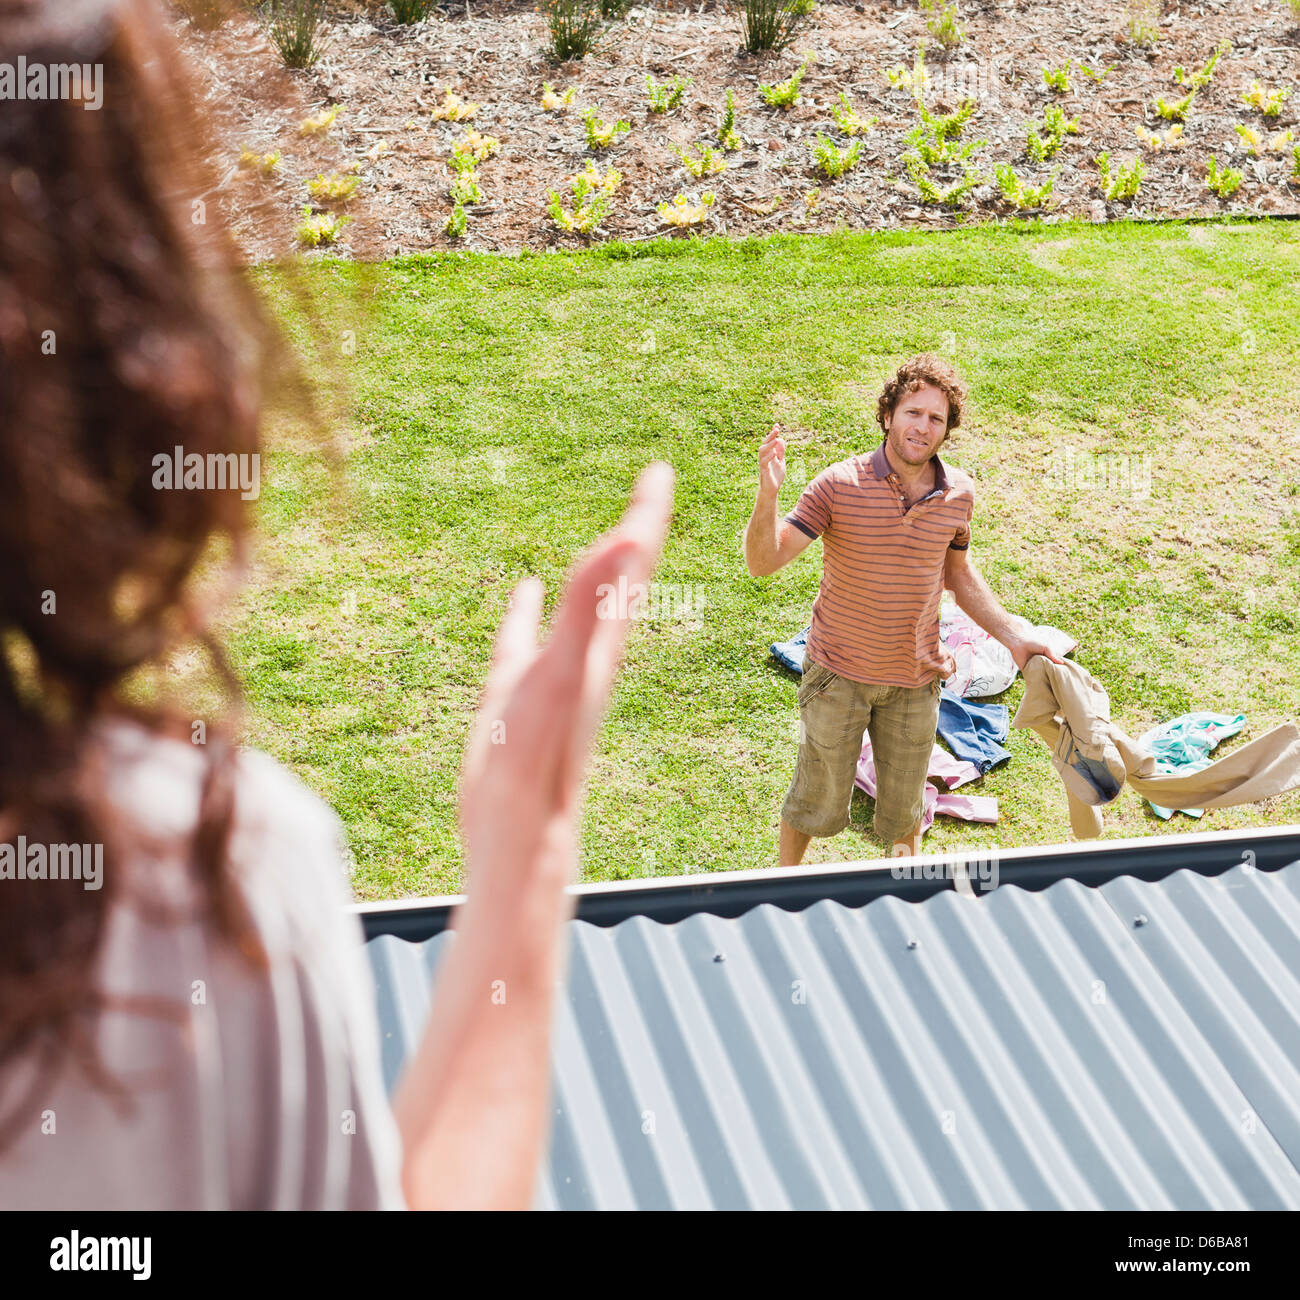 Woman arguing with boyfriend in backyard Photo Stock